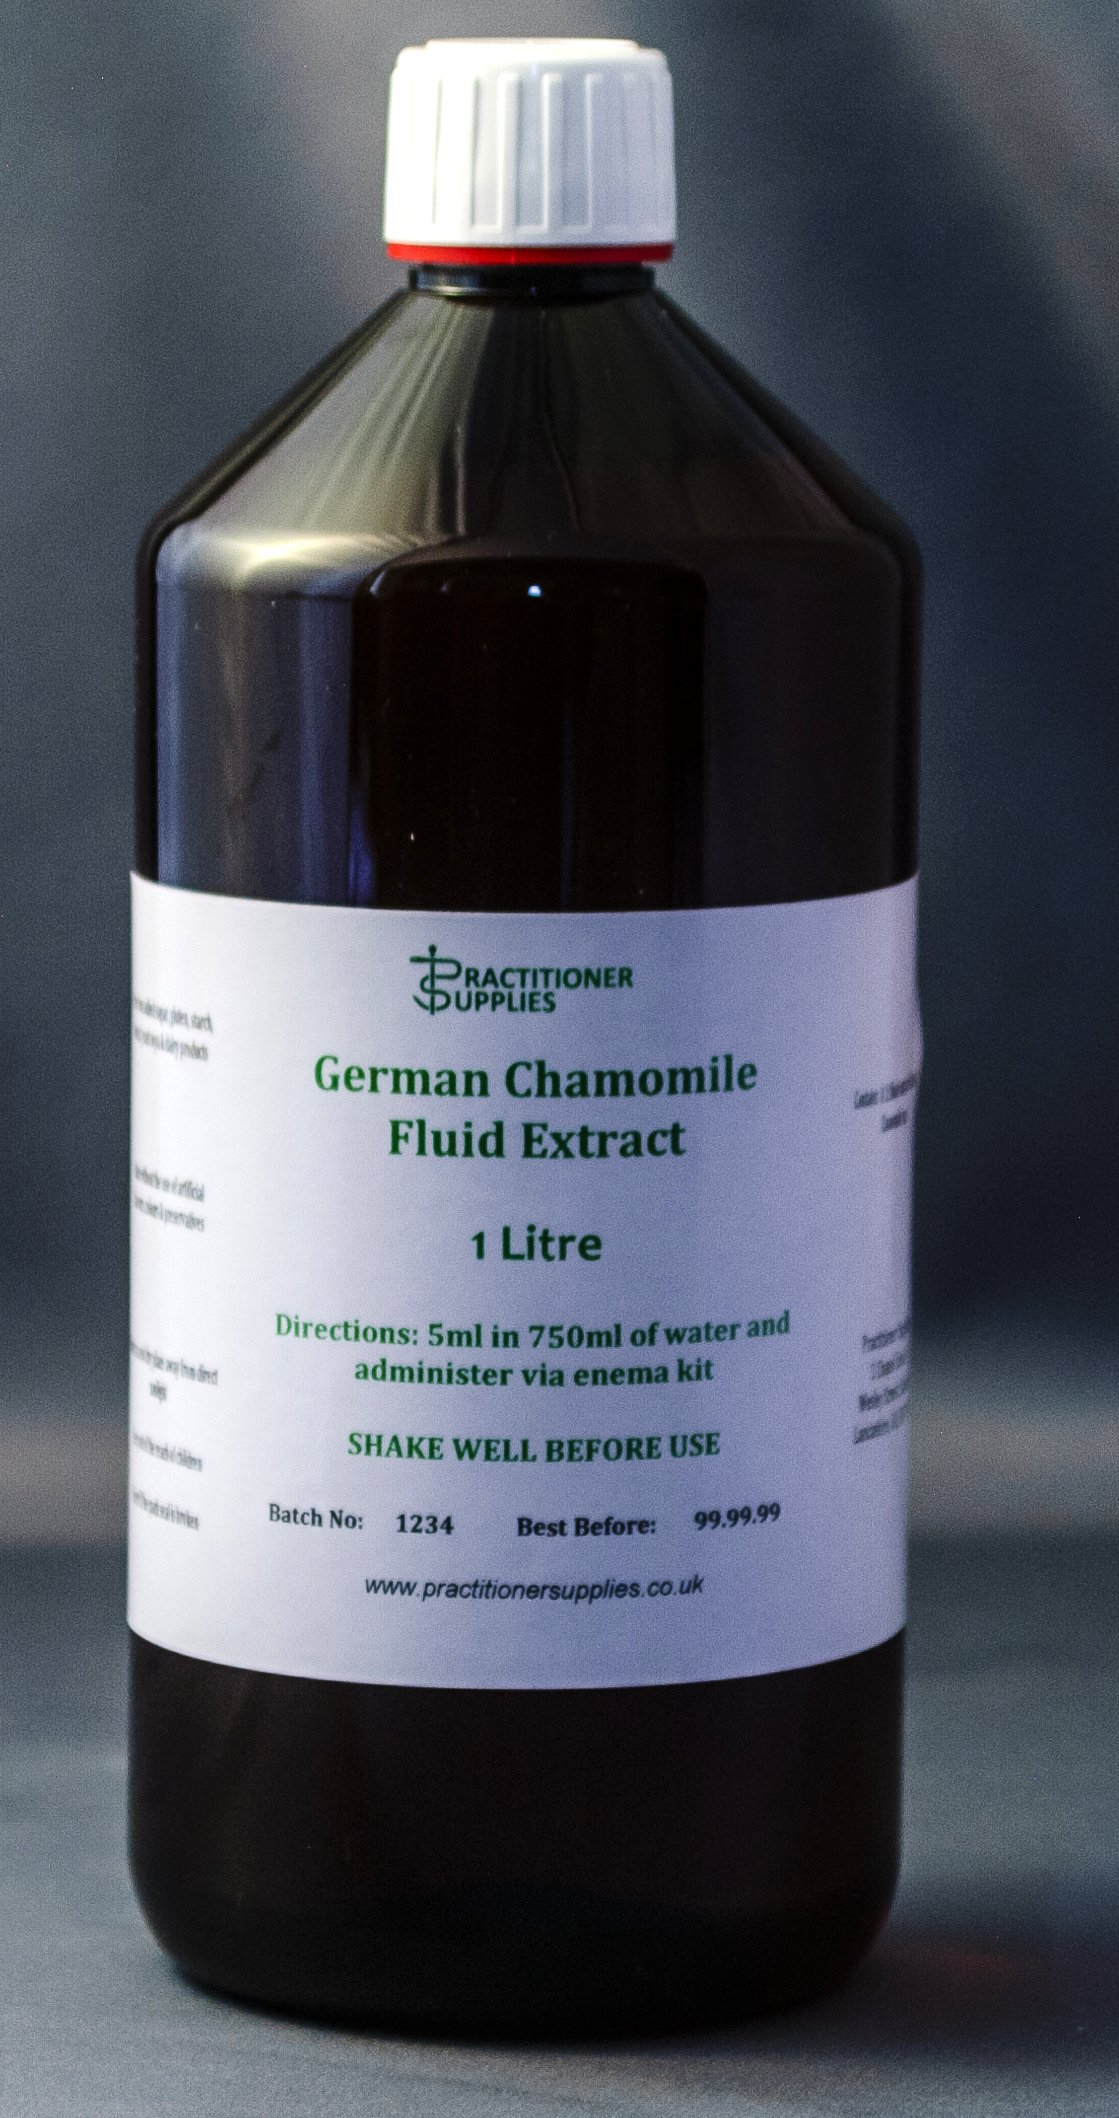 German Chamomile Fluid Extract 1 litre